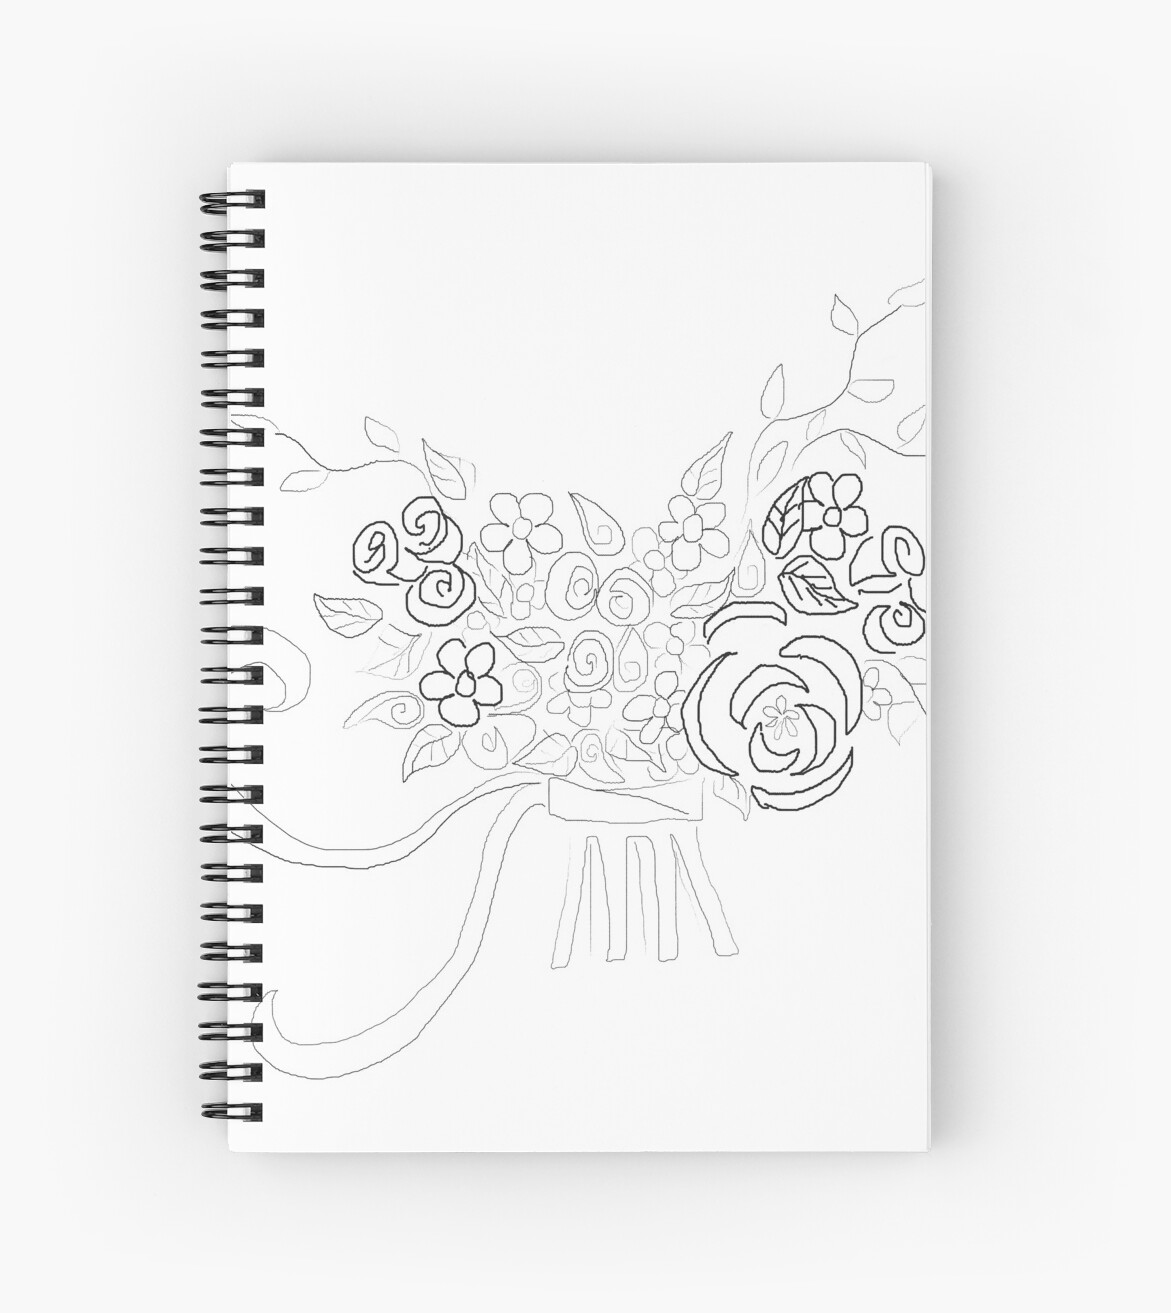 Wedding flower bouquet 2 - Line Drawing\